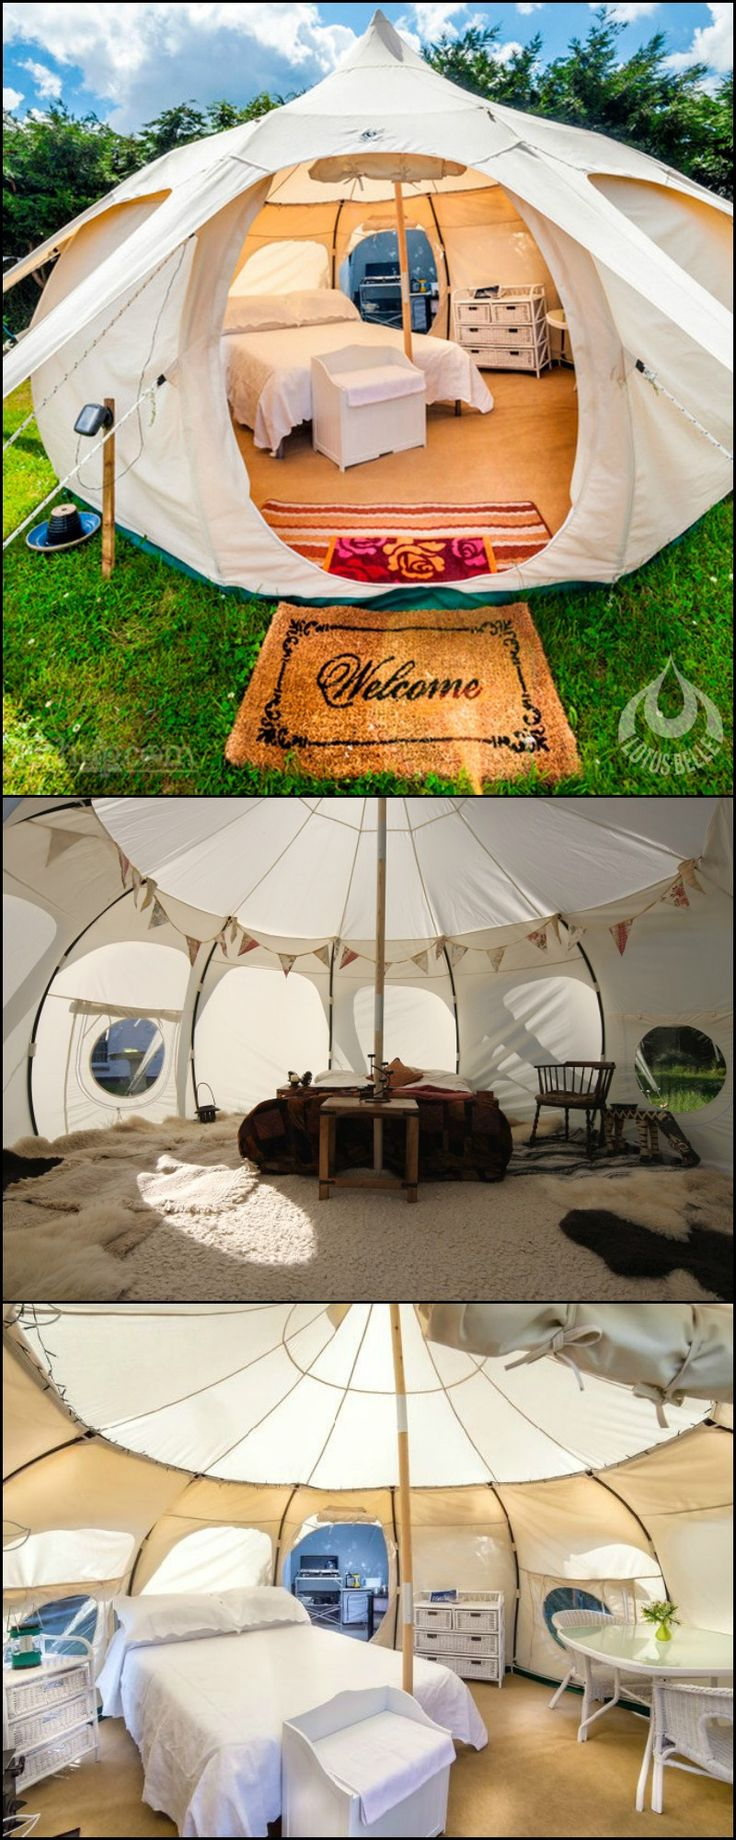 Even those who consider themselves homebodies will love spending more time outdoors with a Lotus Belle!  The Lotus Belle tents are great quality sheds that you can use anytime of the year. It's perfec (Camping Hacks)